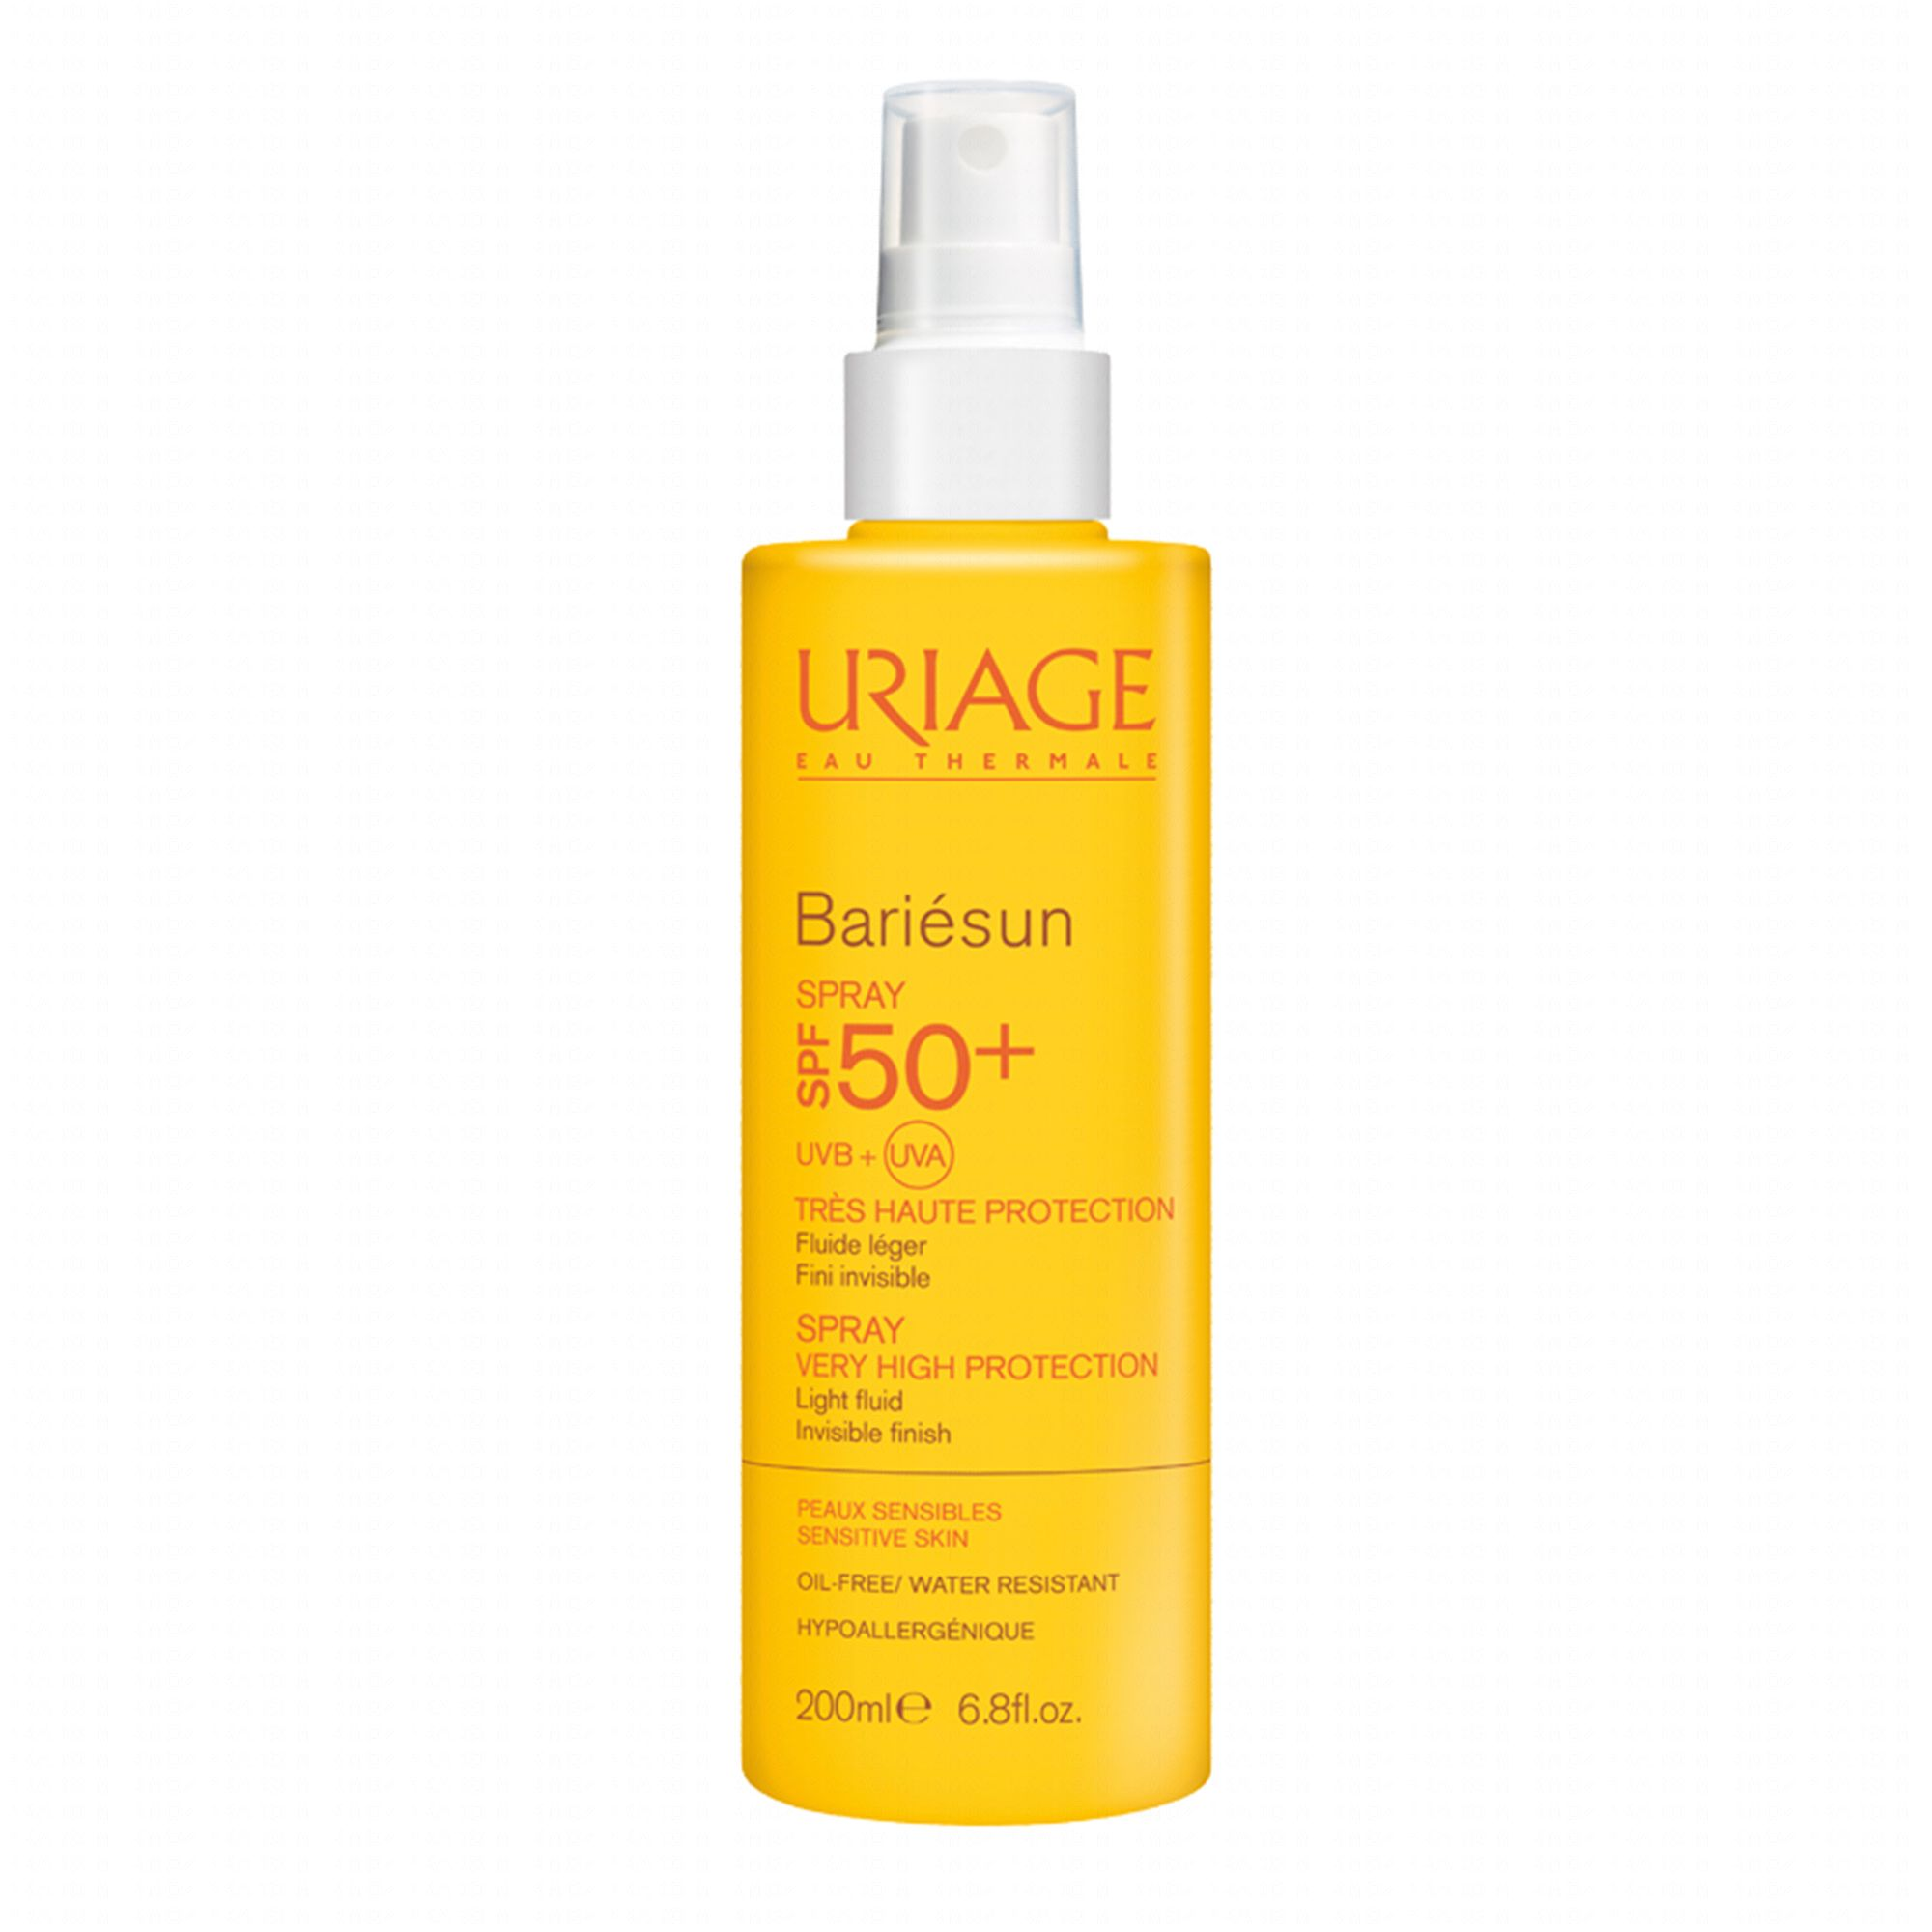 uriage barièsun spf50  spray 200ml